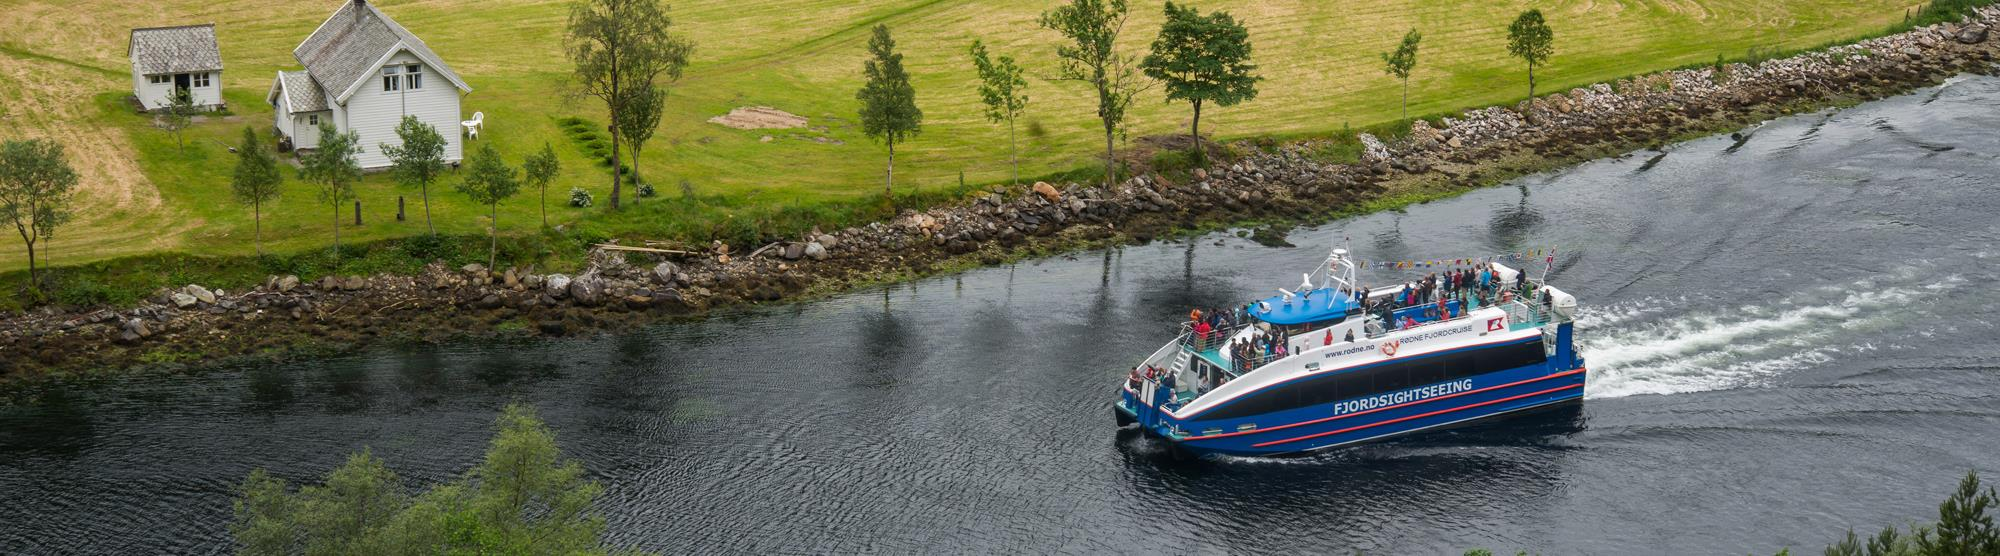 Short Cruises And Half Day Fjord Tours Visitbergen Com